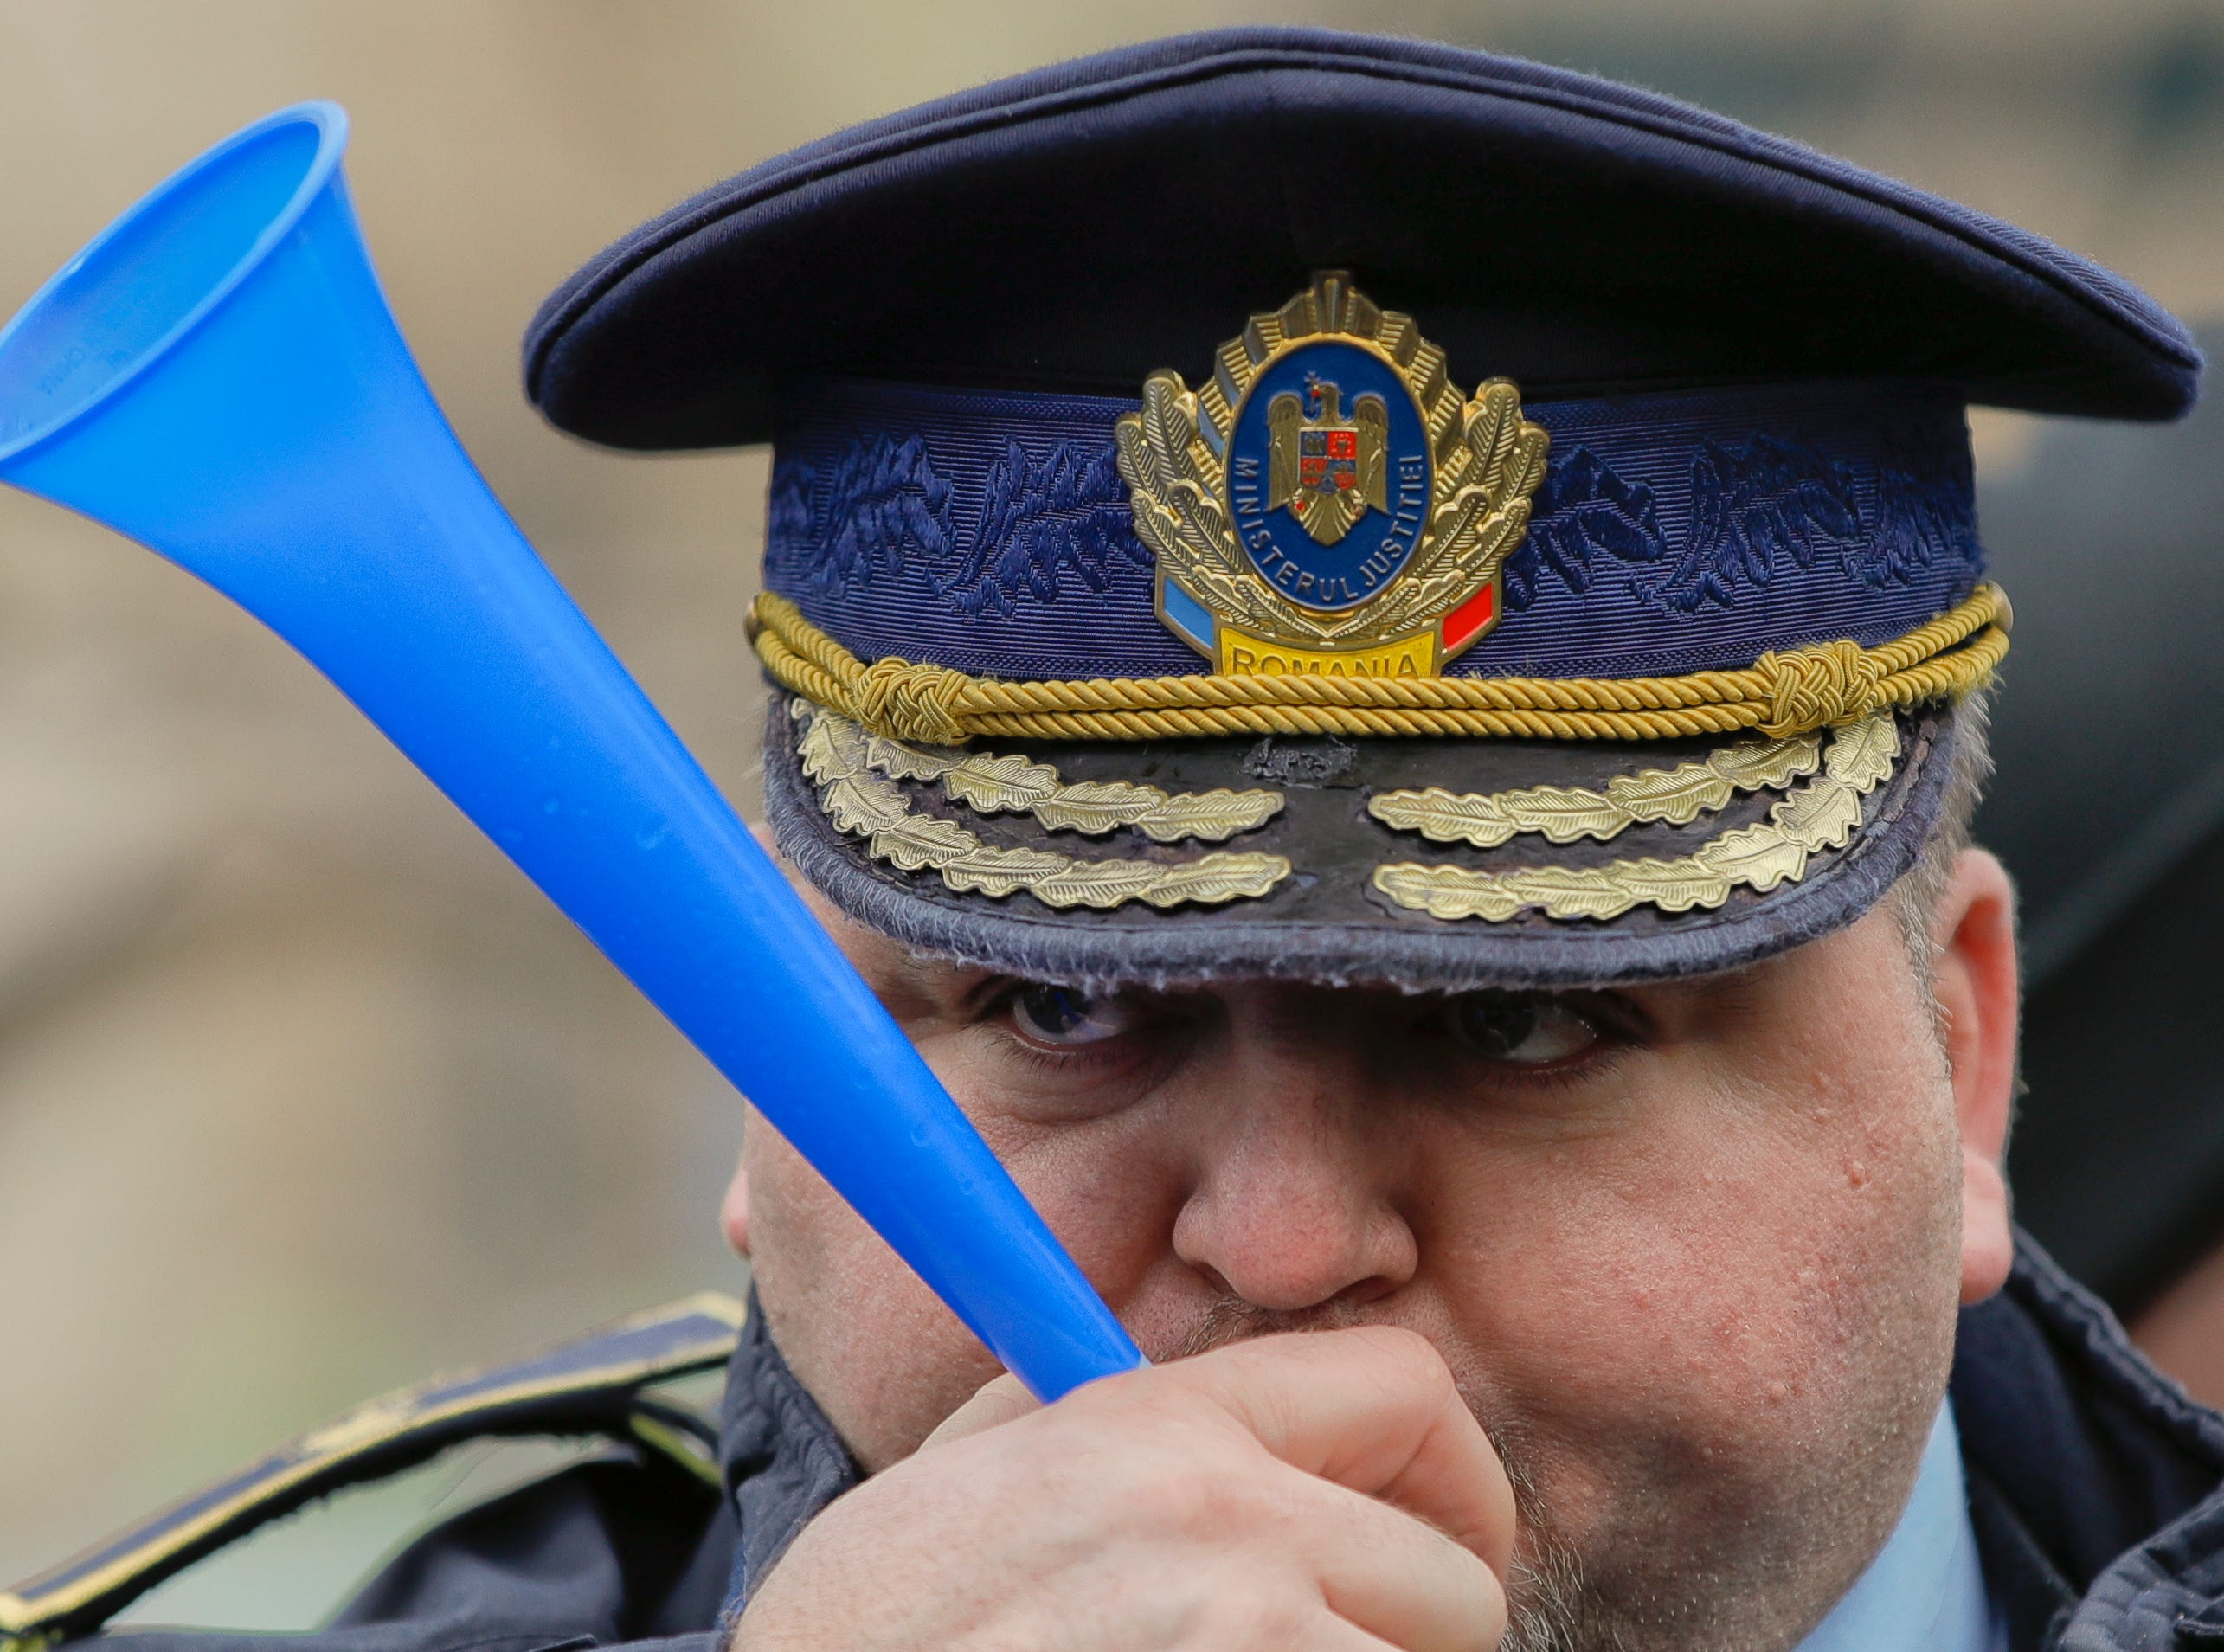 A penitentiary system security officer sounds a horn during a protest outside the Interior Ministry headquarters in Bucharest, Romania, Thursday, Feb. 7, 2019. Police, security officers of the penitentiary system and retired military personnel joined a protest asking for better working conditions, safety equipment, salaries and pensions.